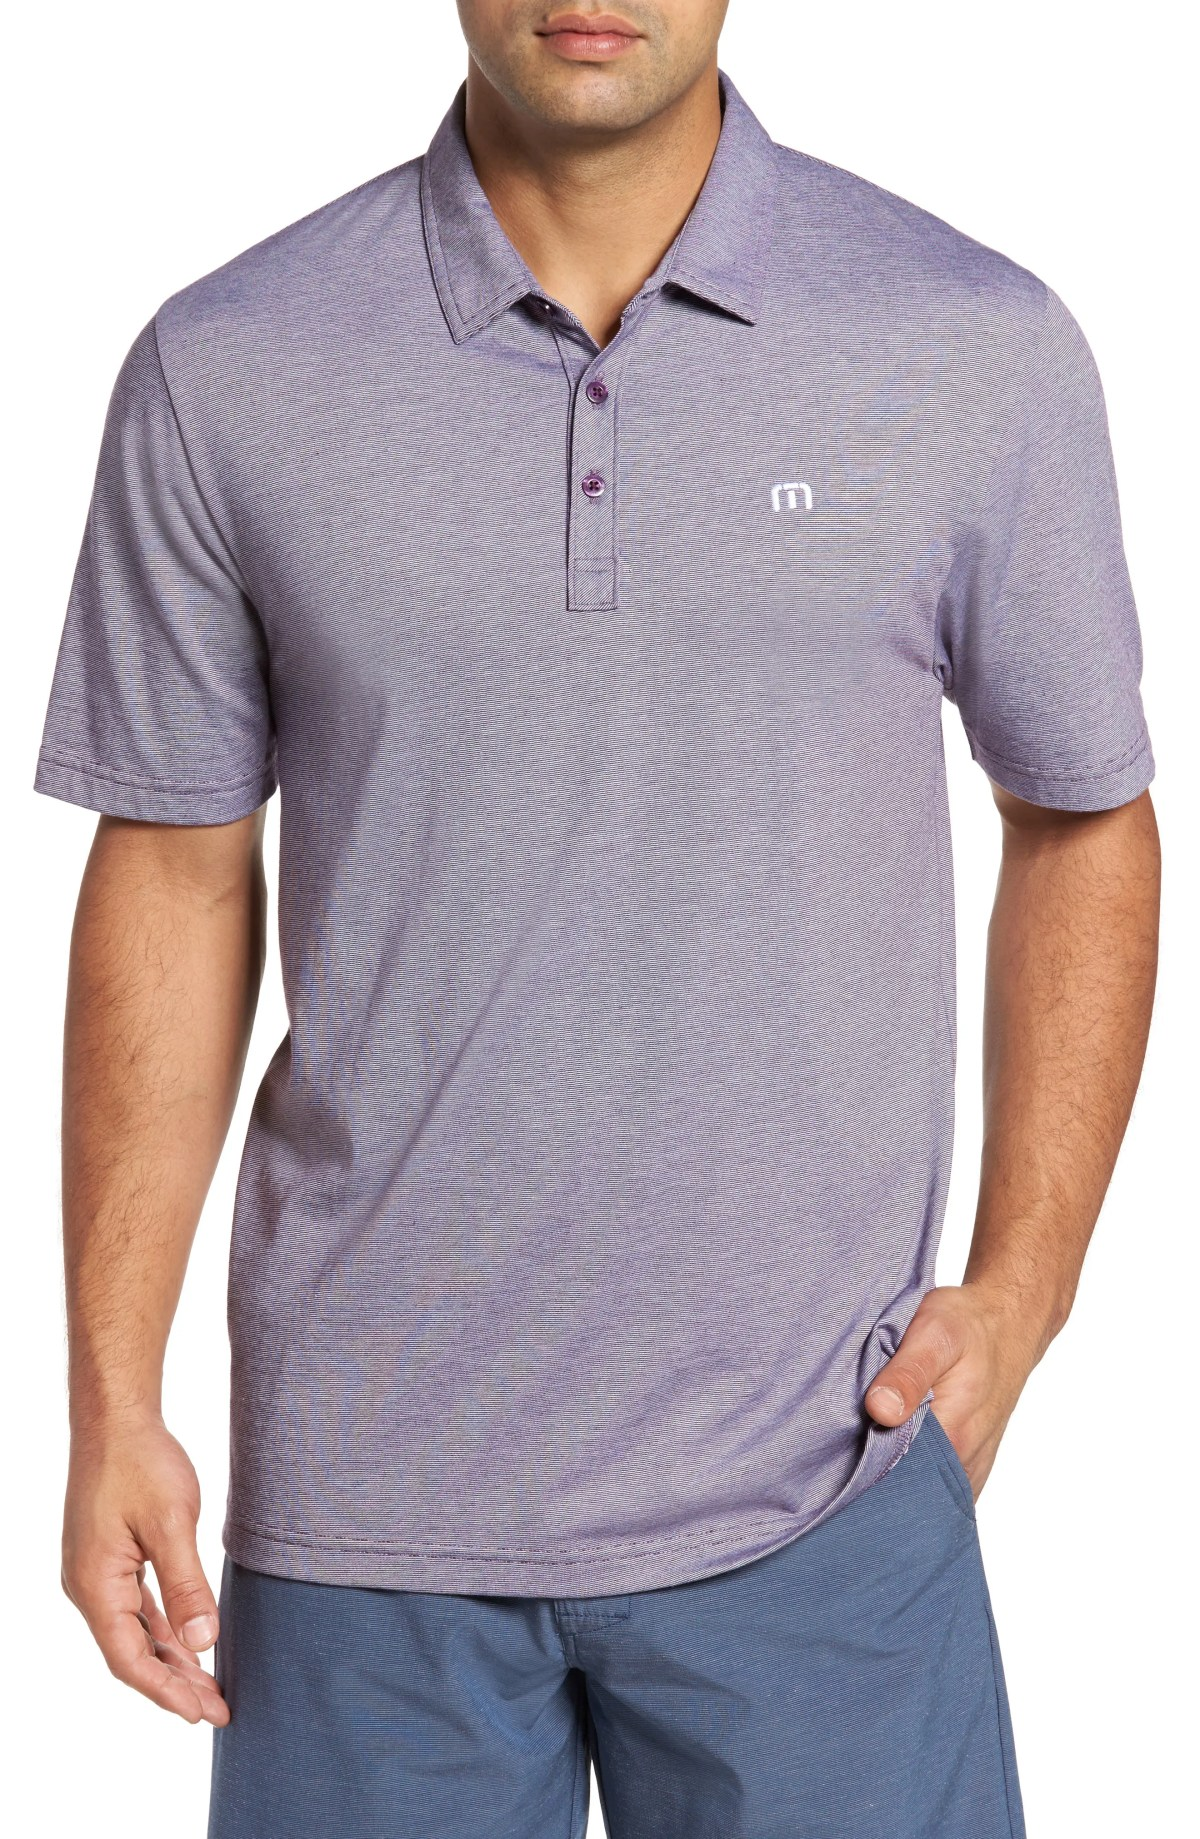 TRAVISMATHEW The Zinna Regular Fit Performance Polo, Main, color, BLACKBERRY/ WHITE